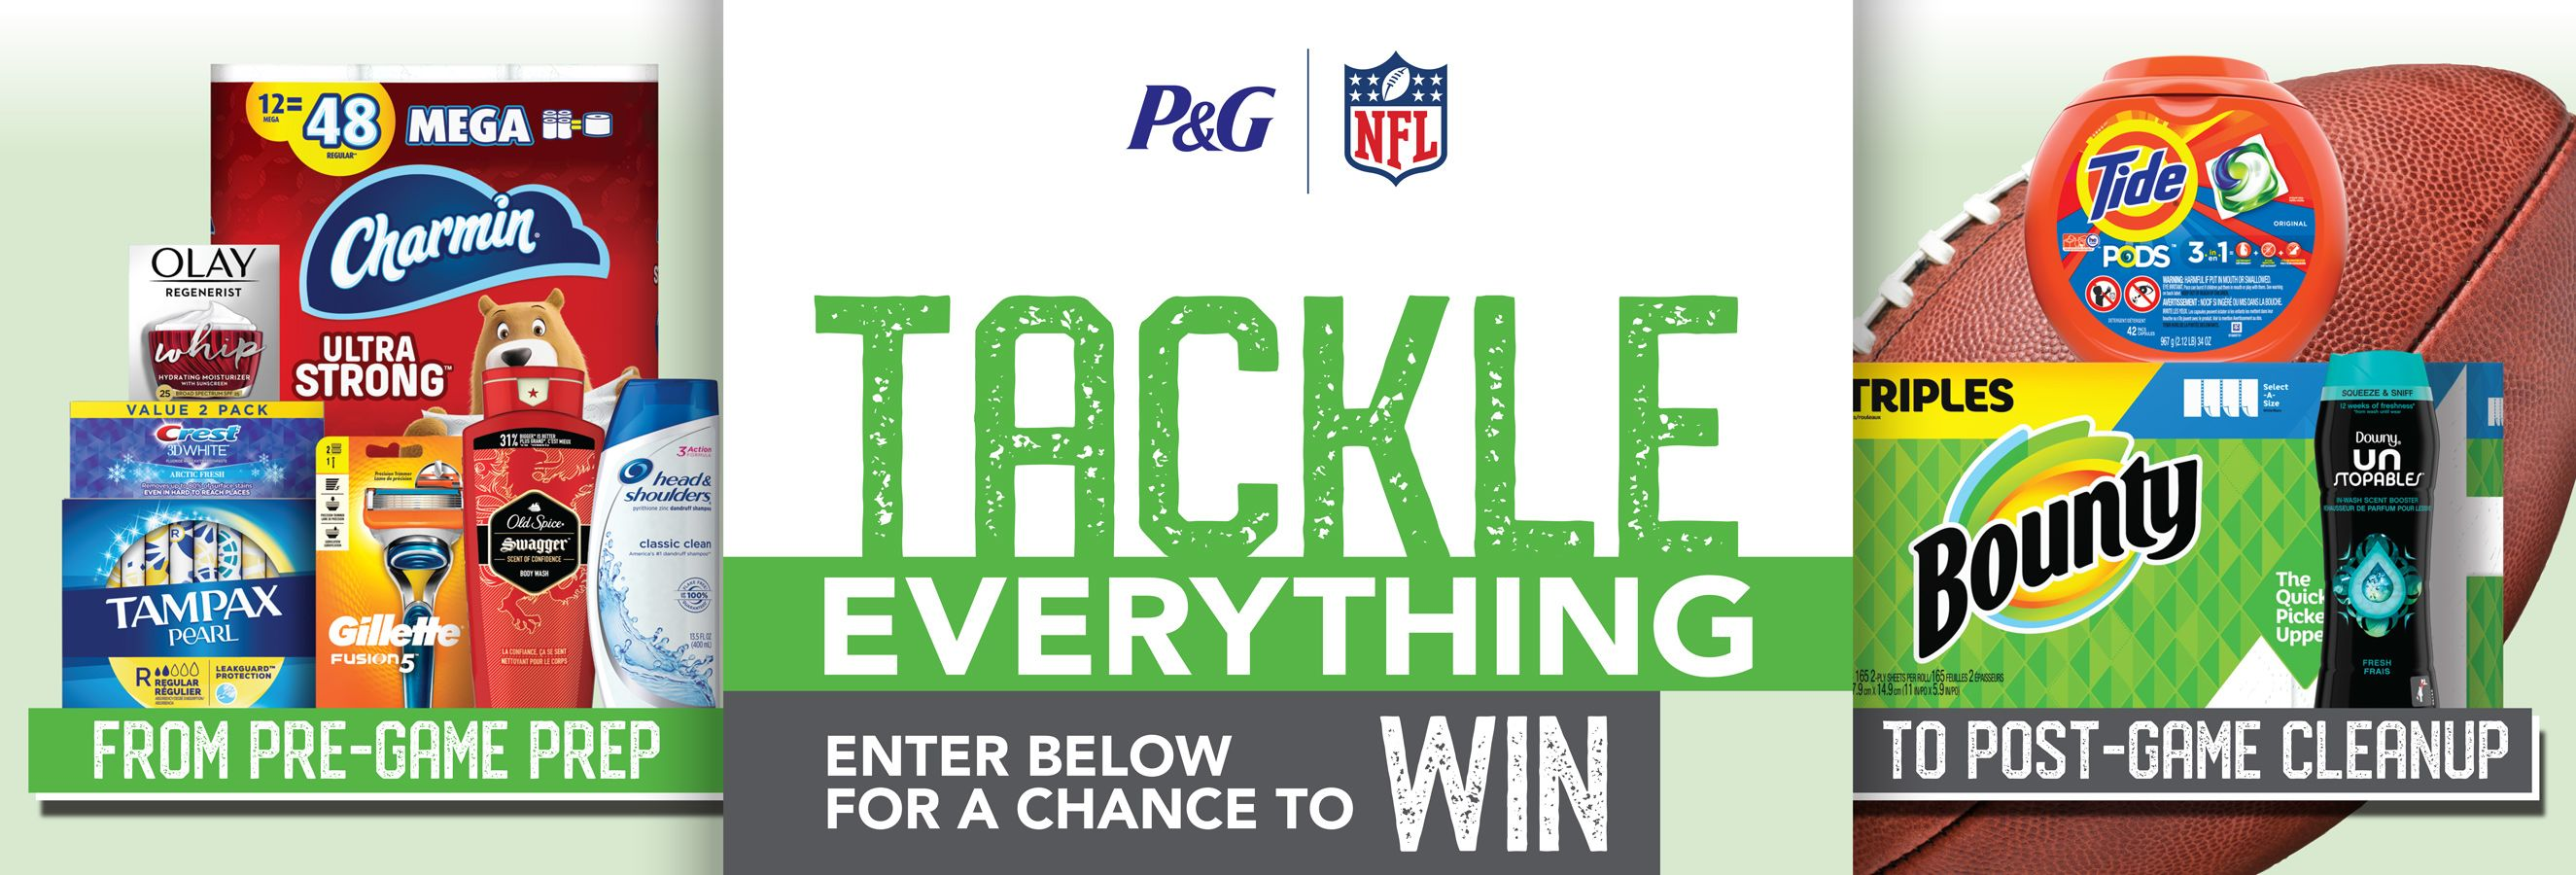 Graphic: Header - P&G Tackle Everything EnterBelow For A Chance To Win